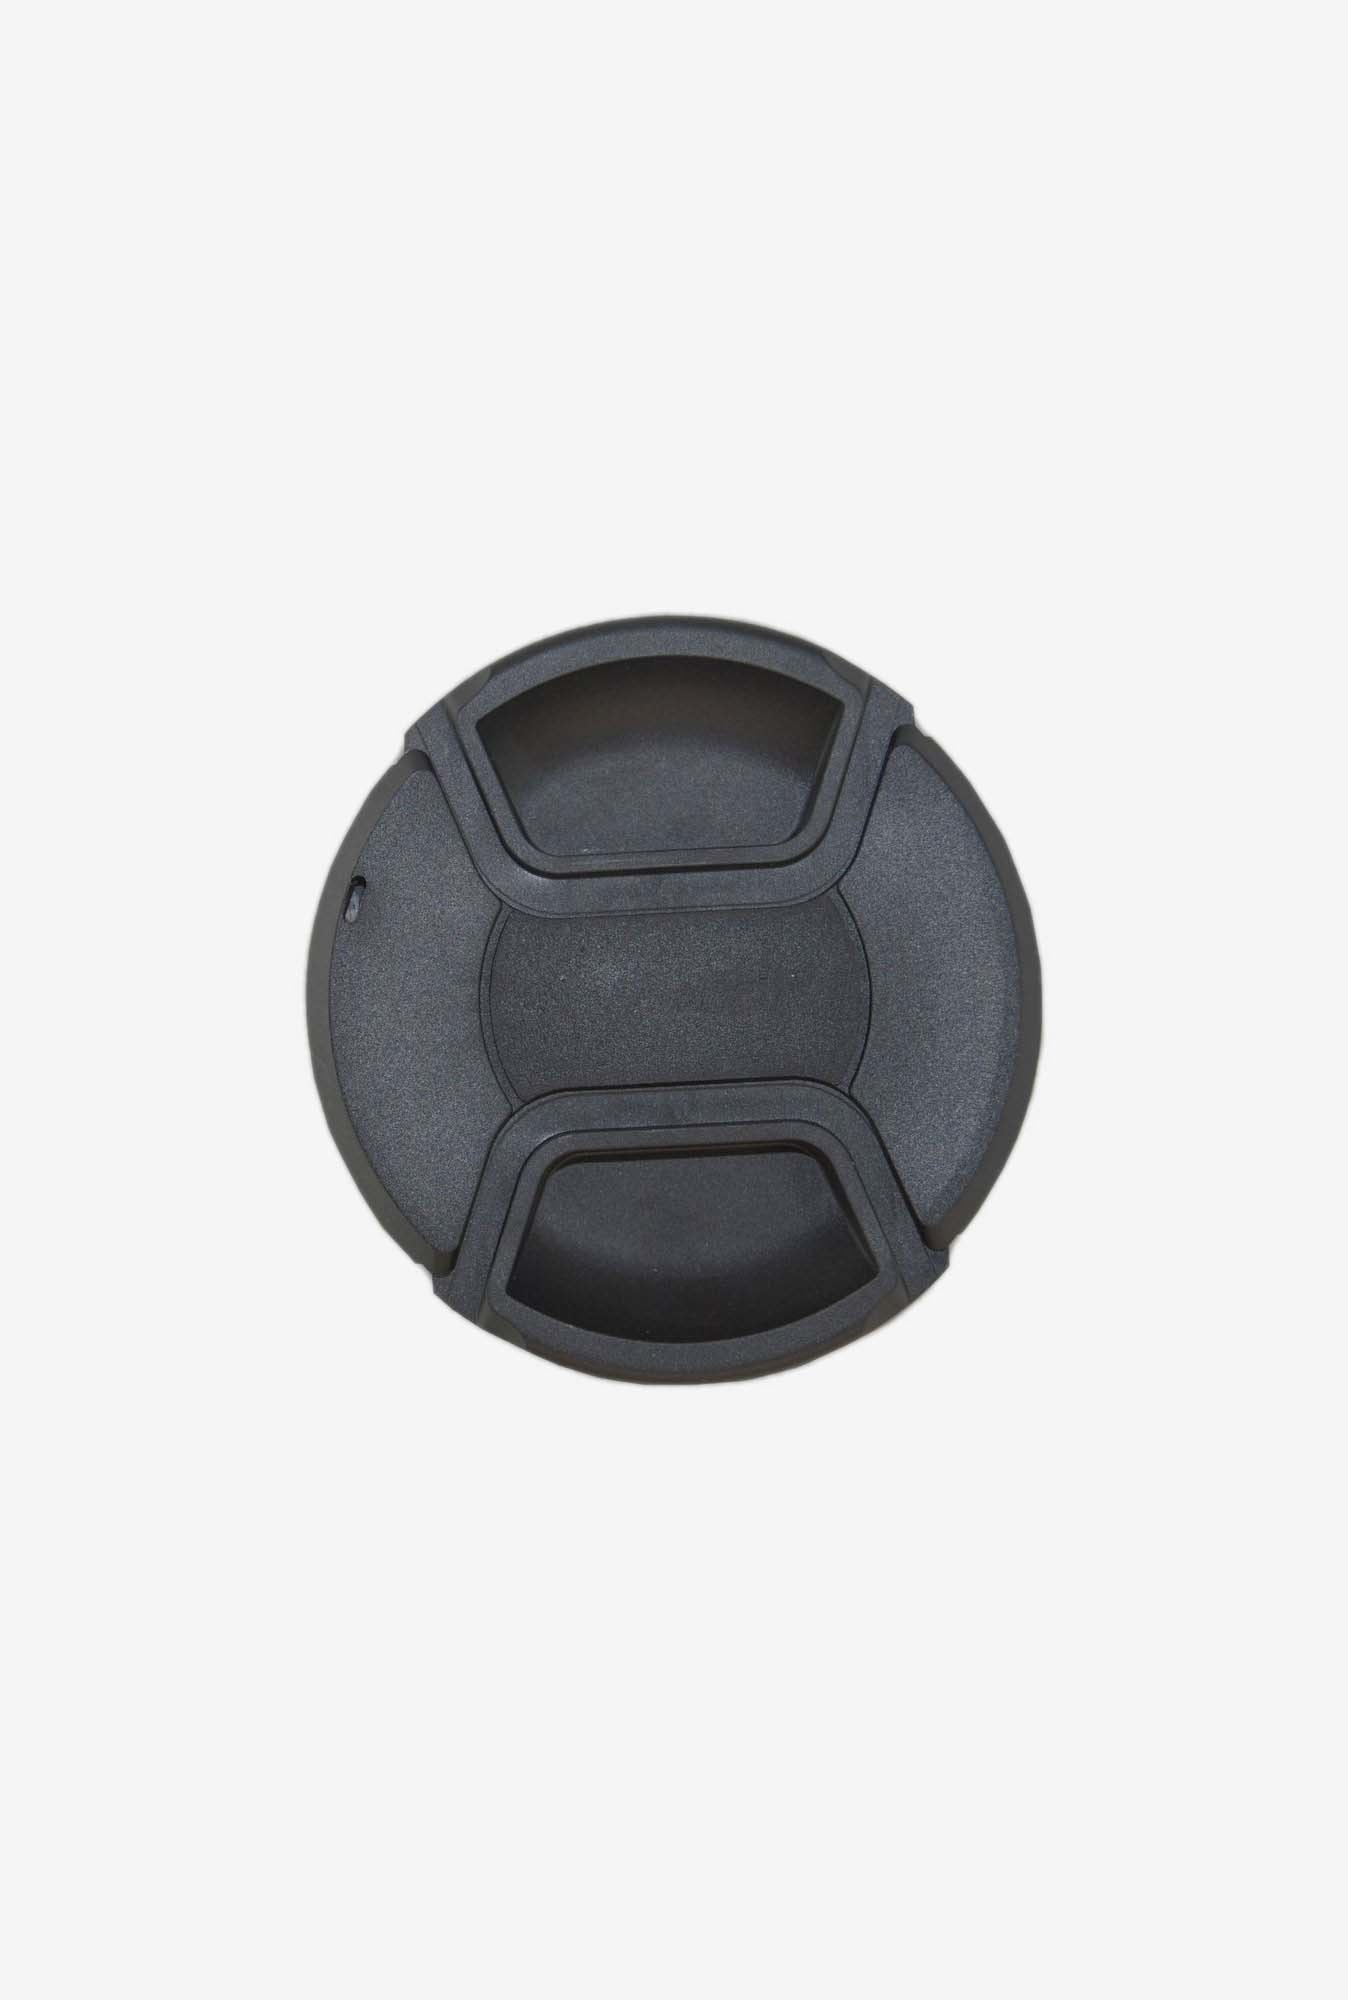 Polaroid PL-LC62 Studio Series Snap Mount Lens Cap (Black)